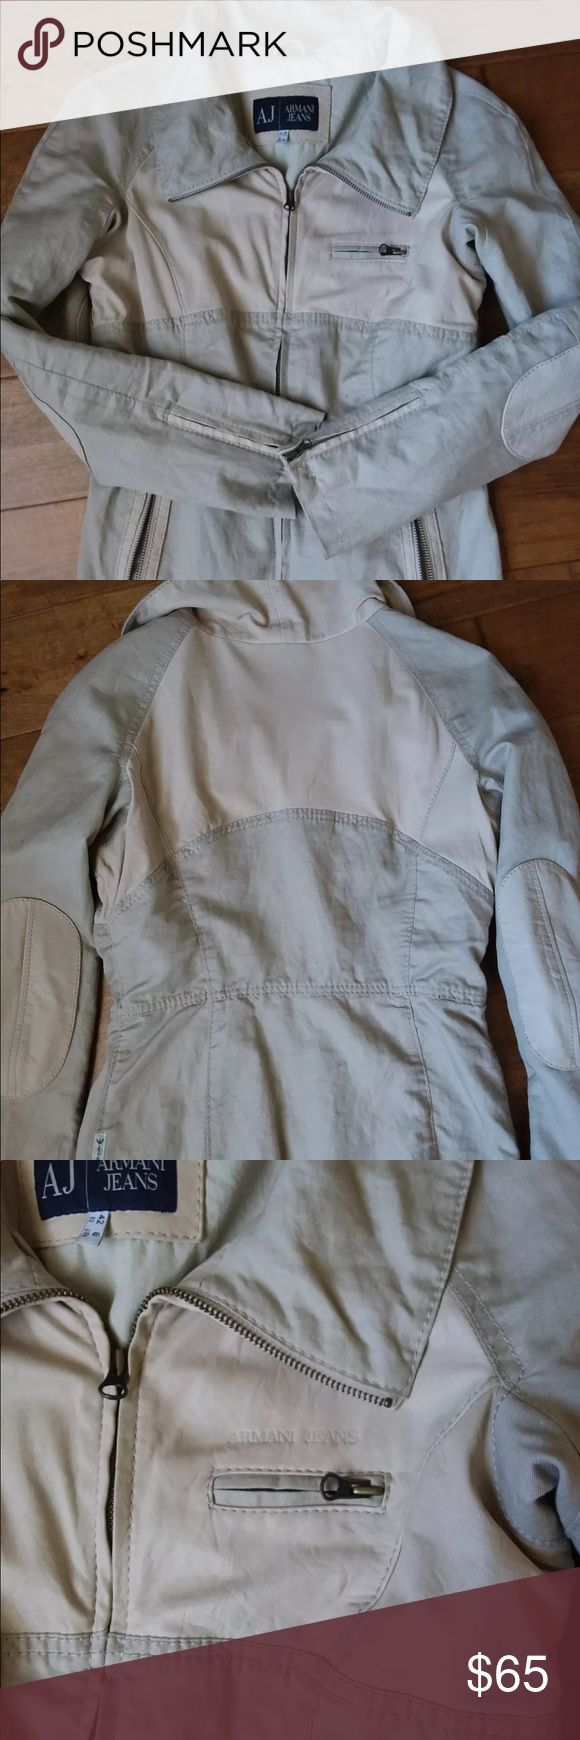 Armani Jeans Beautiful Armani Jeans jacket. Leather and fabric. Wore only a few times. Armani Jeans Jackets & Coats Blazers